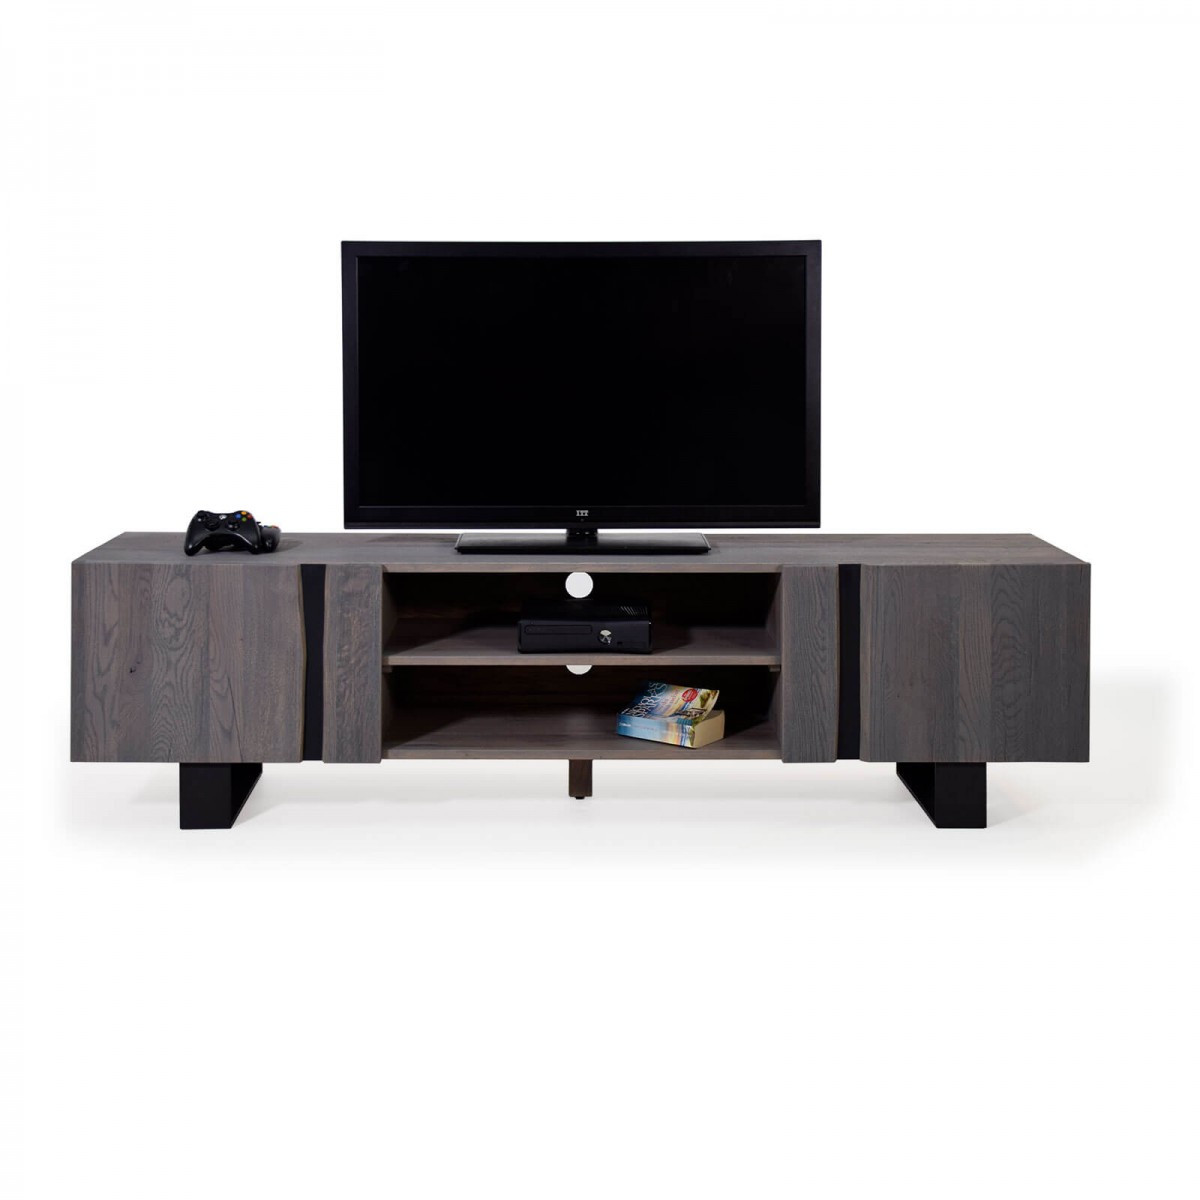 tv lowboard wildeiche massiv grau metall 200 edge. Black Bedroom Furniture Sets. Home Design Ideas